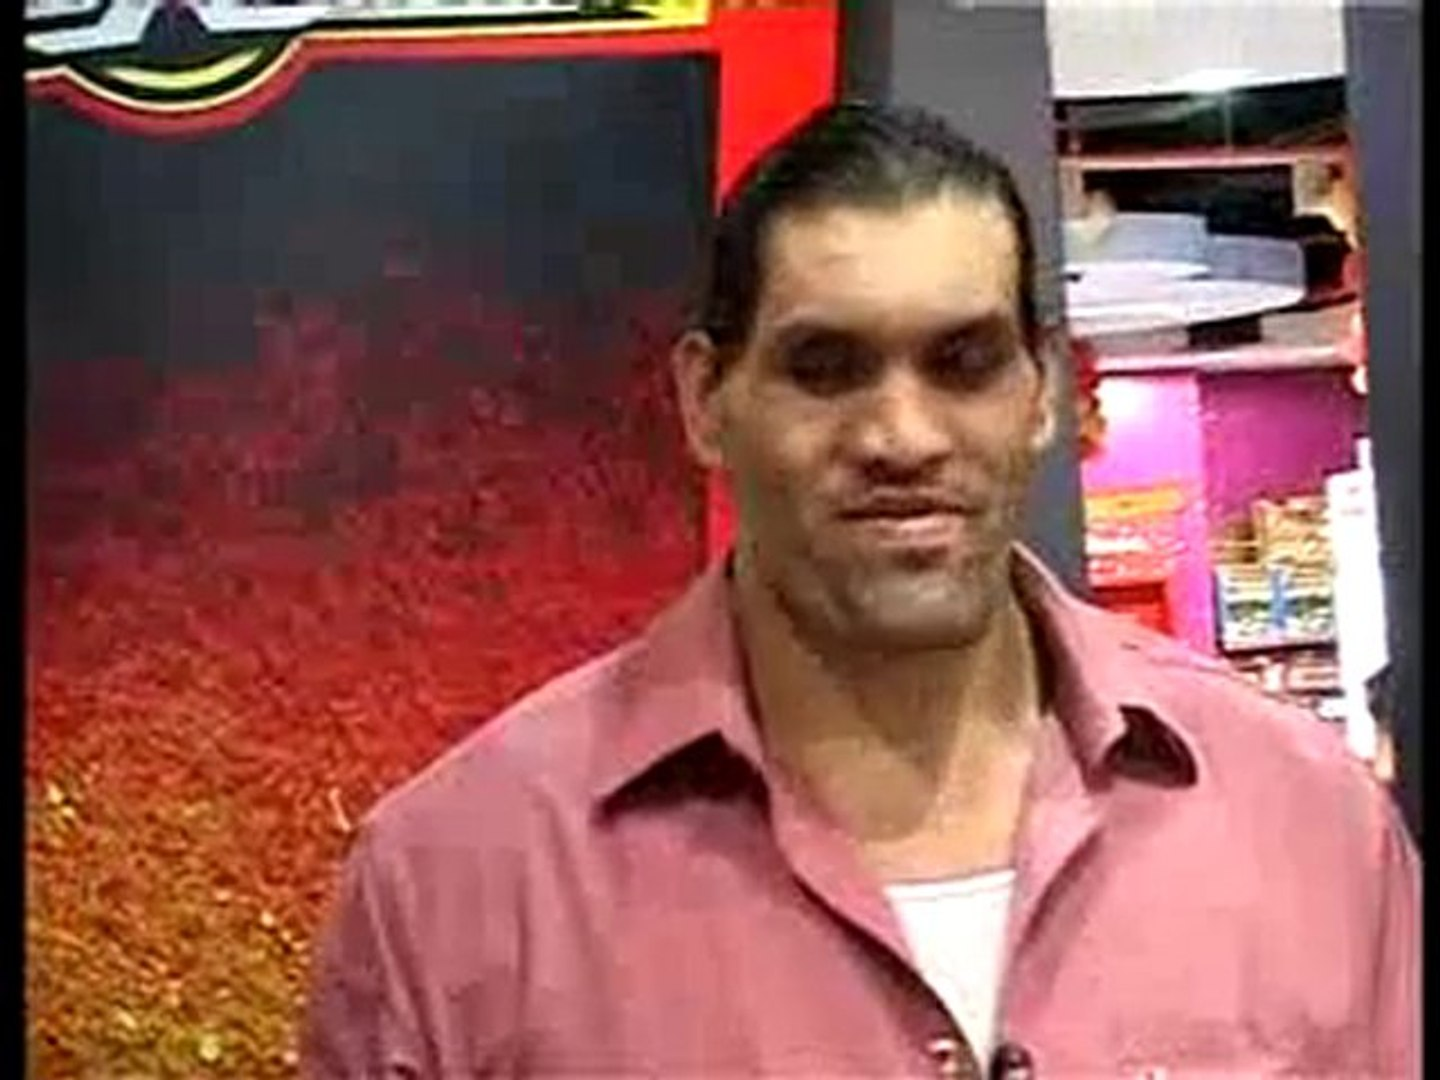 THE GREAT KHALI LAUNCHED WWE RANGE TOYS